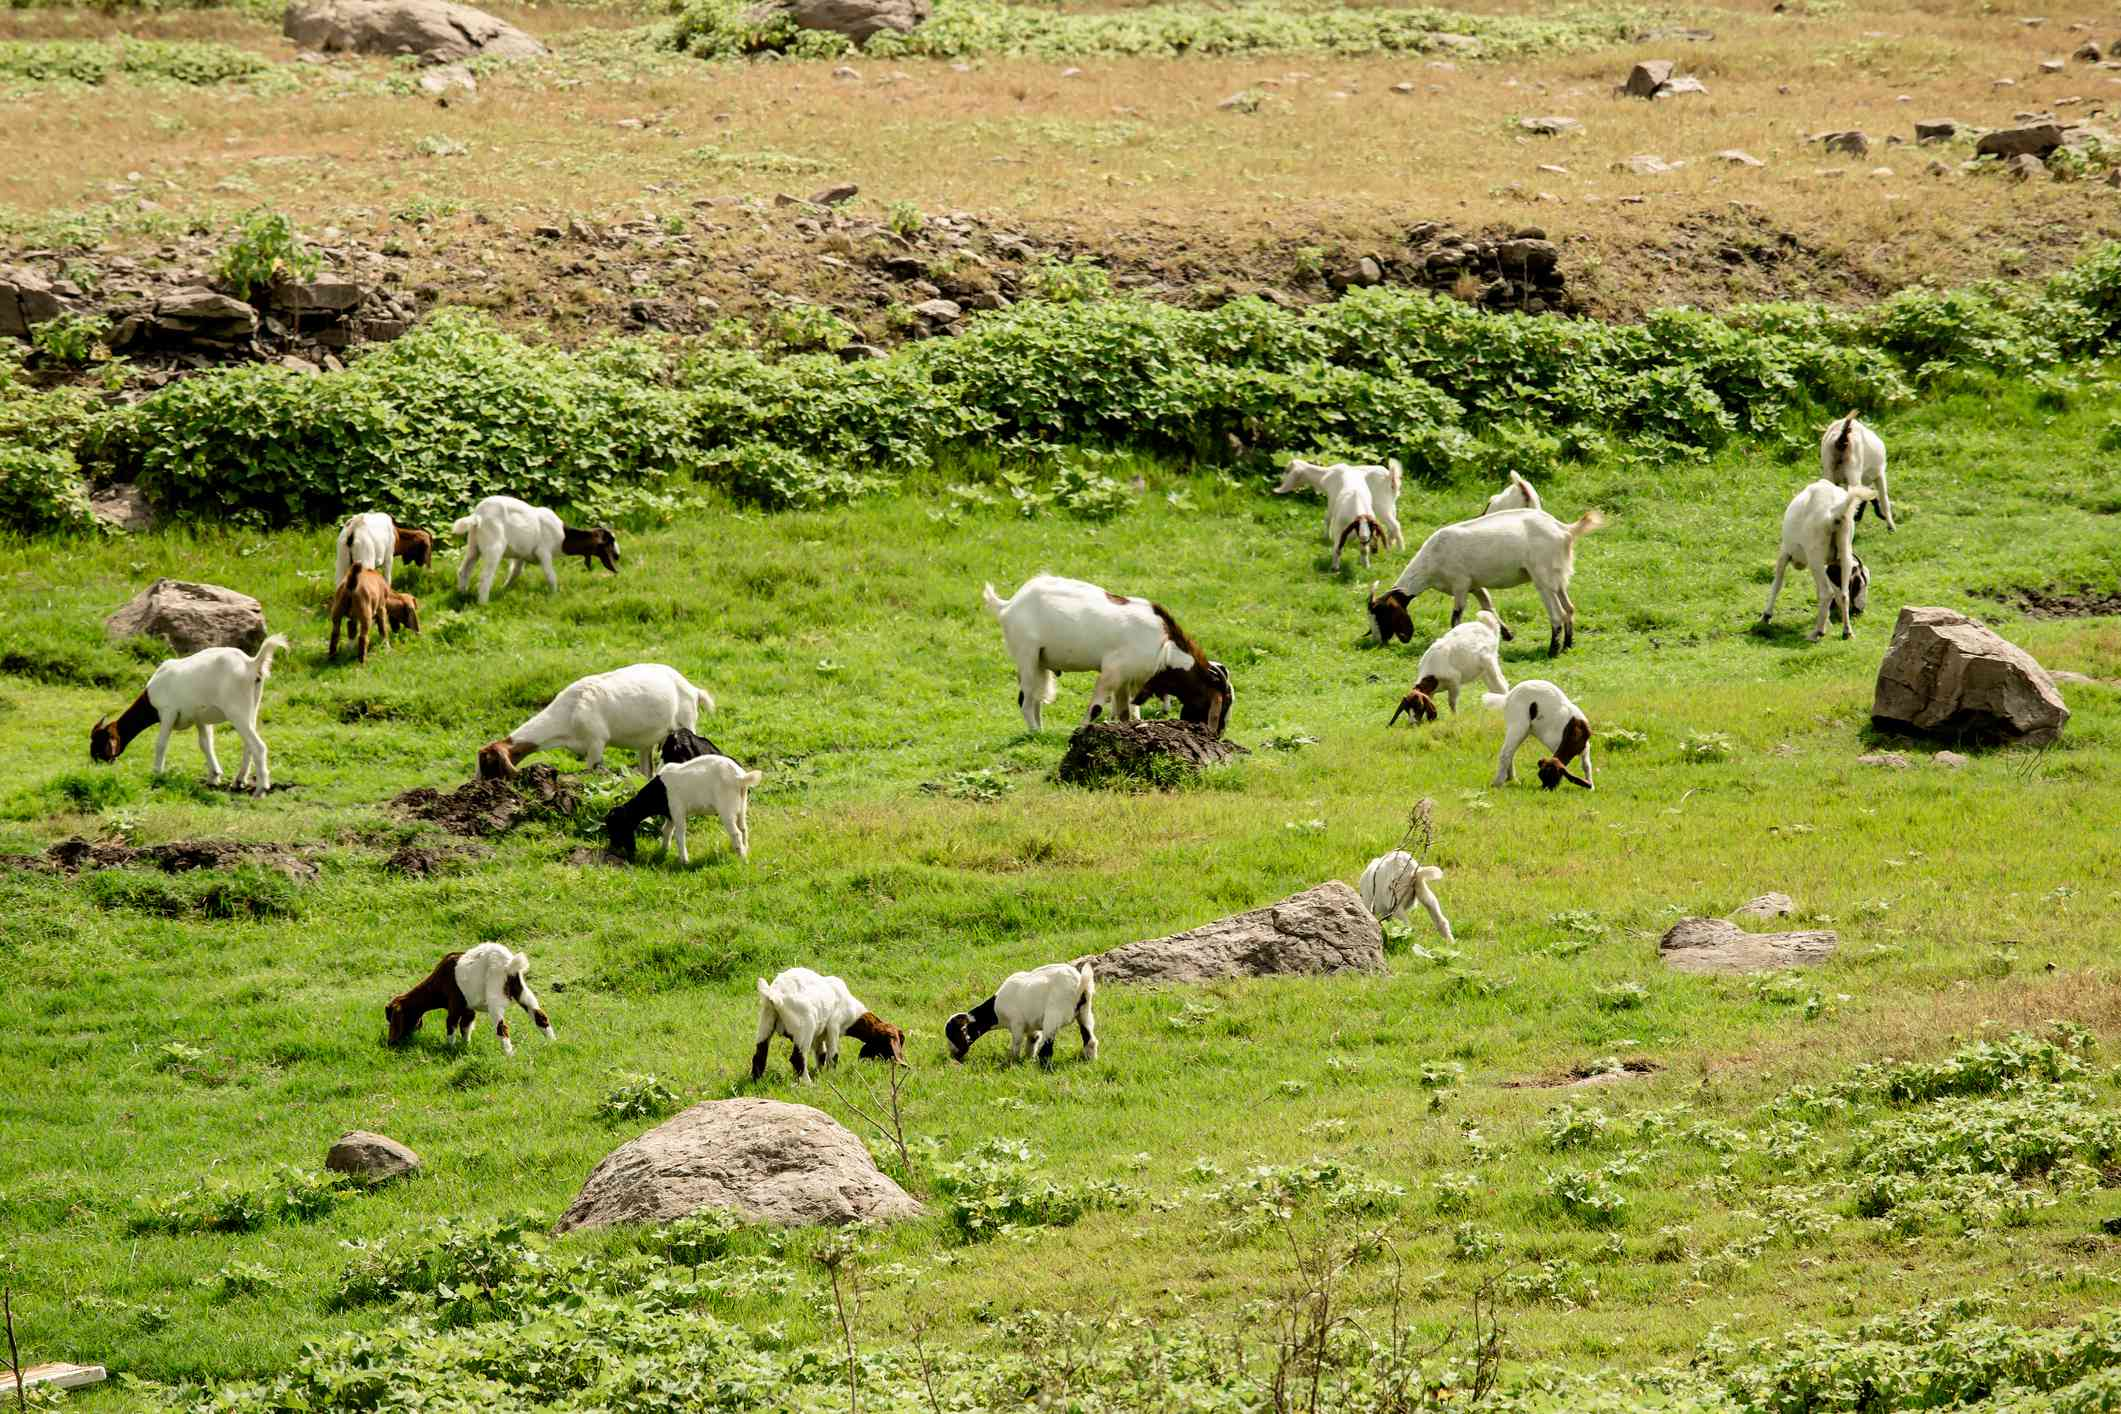 Goats eating on a green pasture.